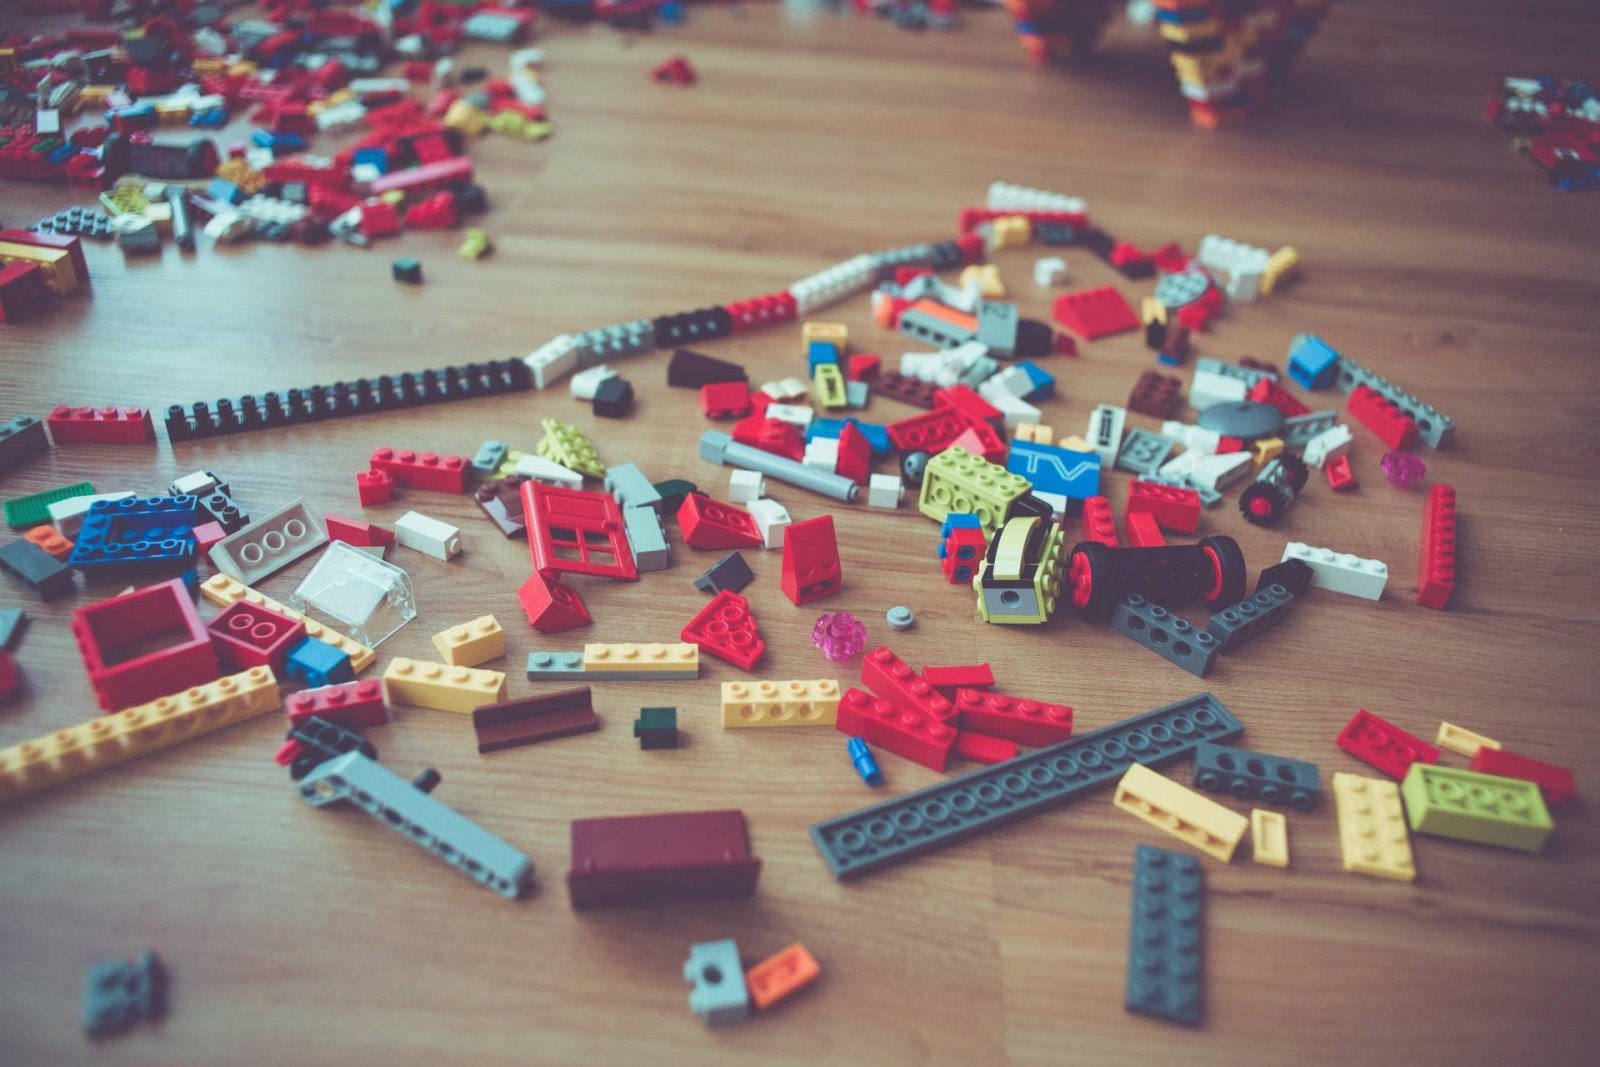 differed coloured lego bricks lying messily on wooden floor